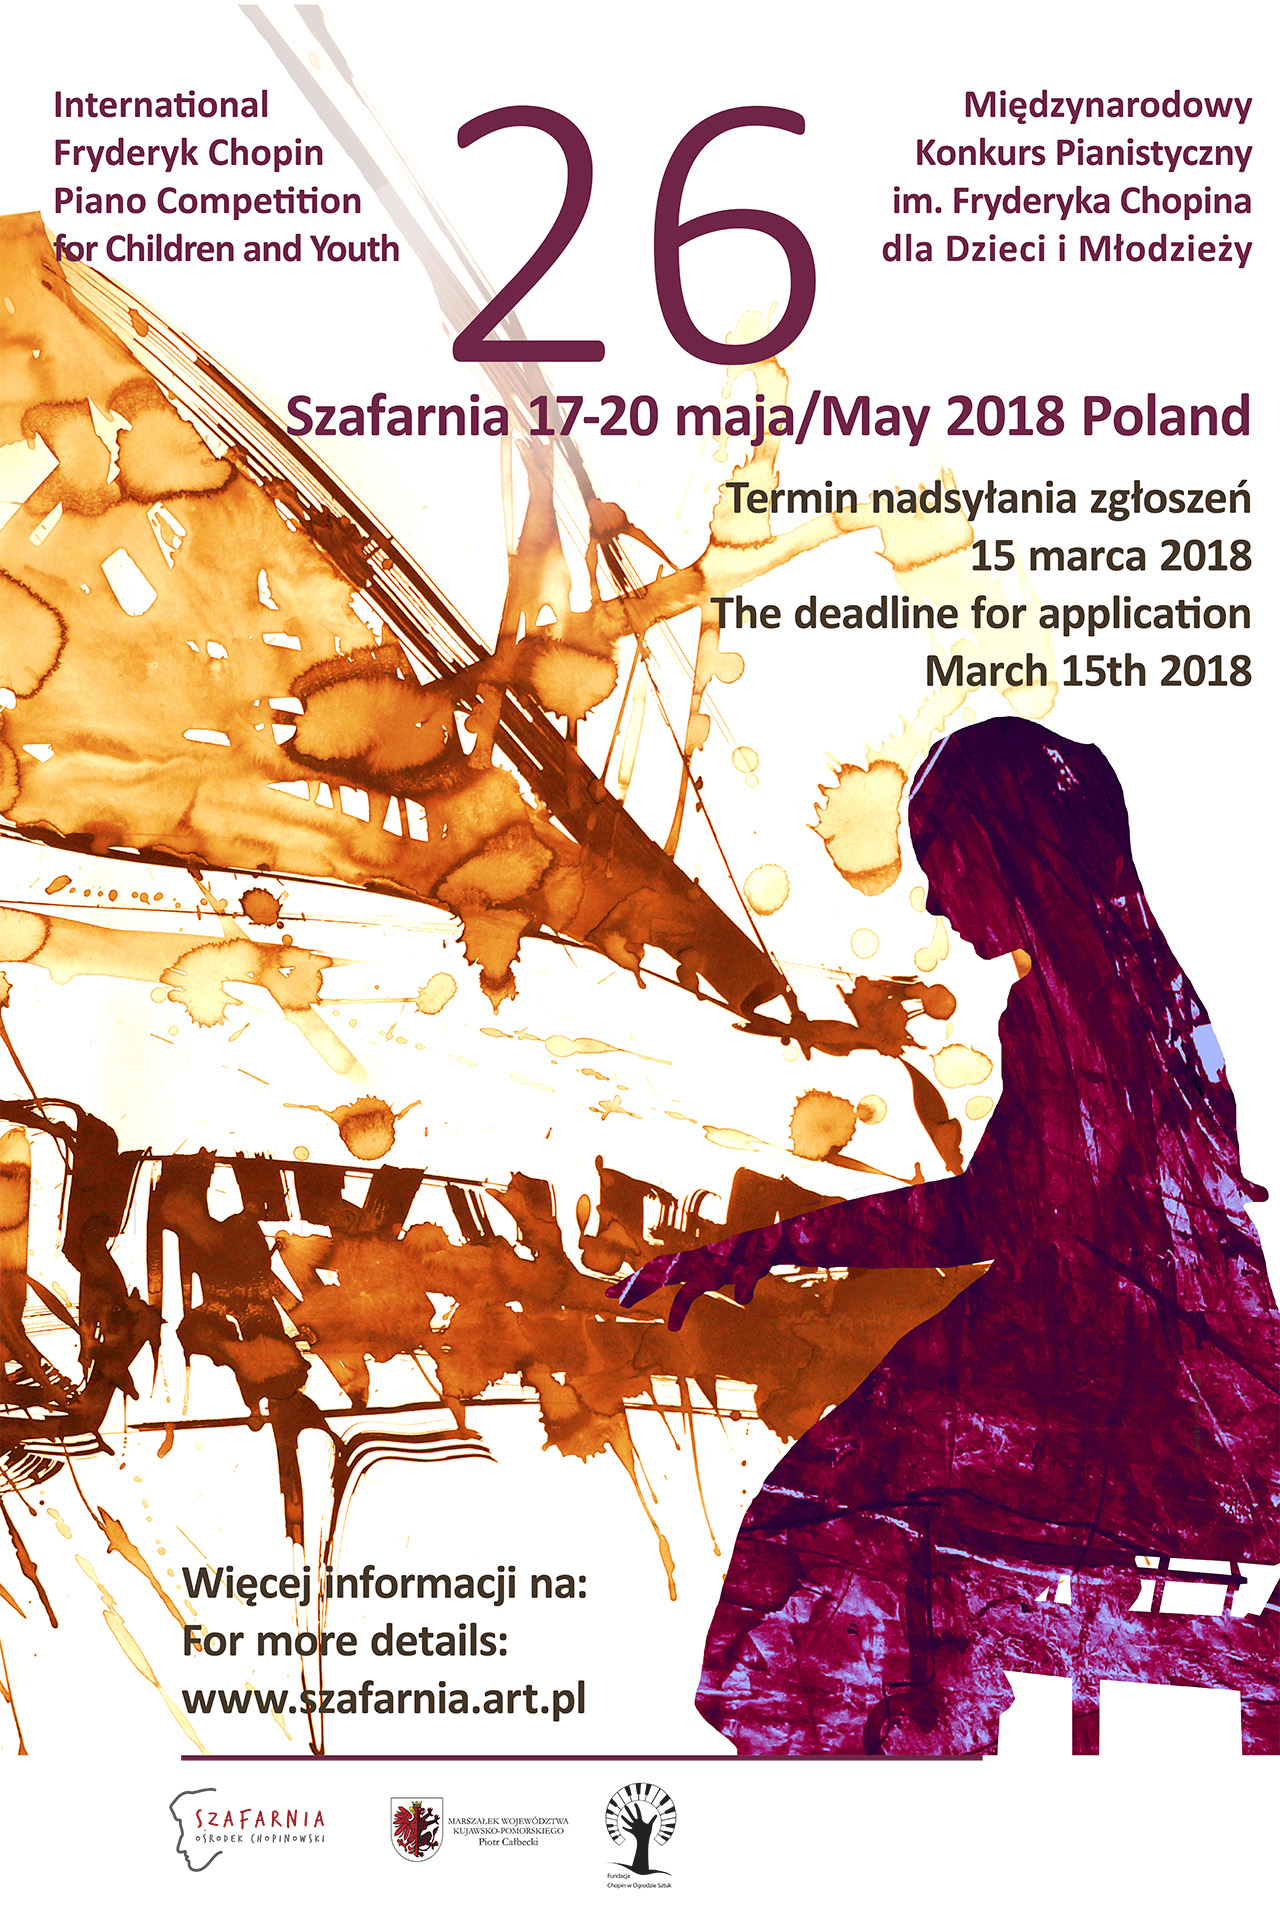 The 26th International Fryderyk Chopin Piano Competition for Children and Youth Szafarnia 2018